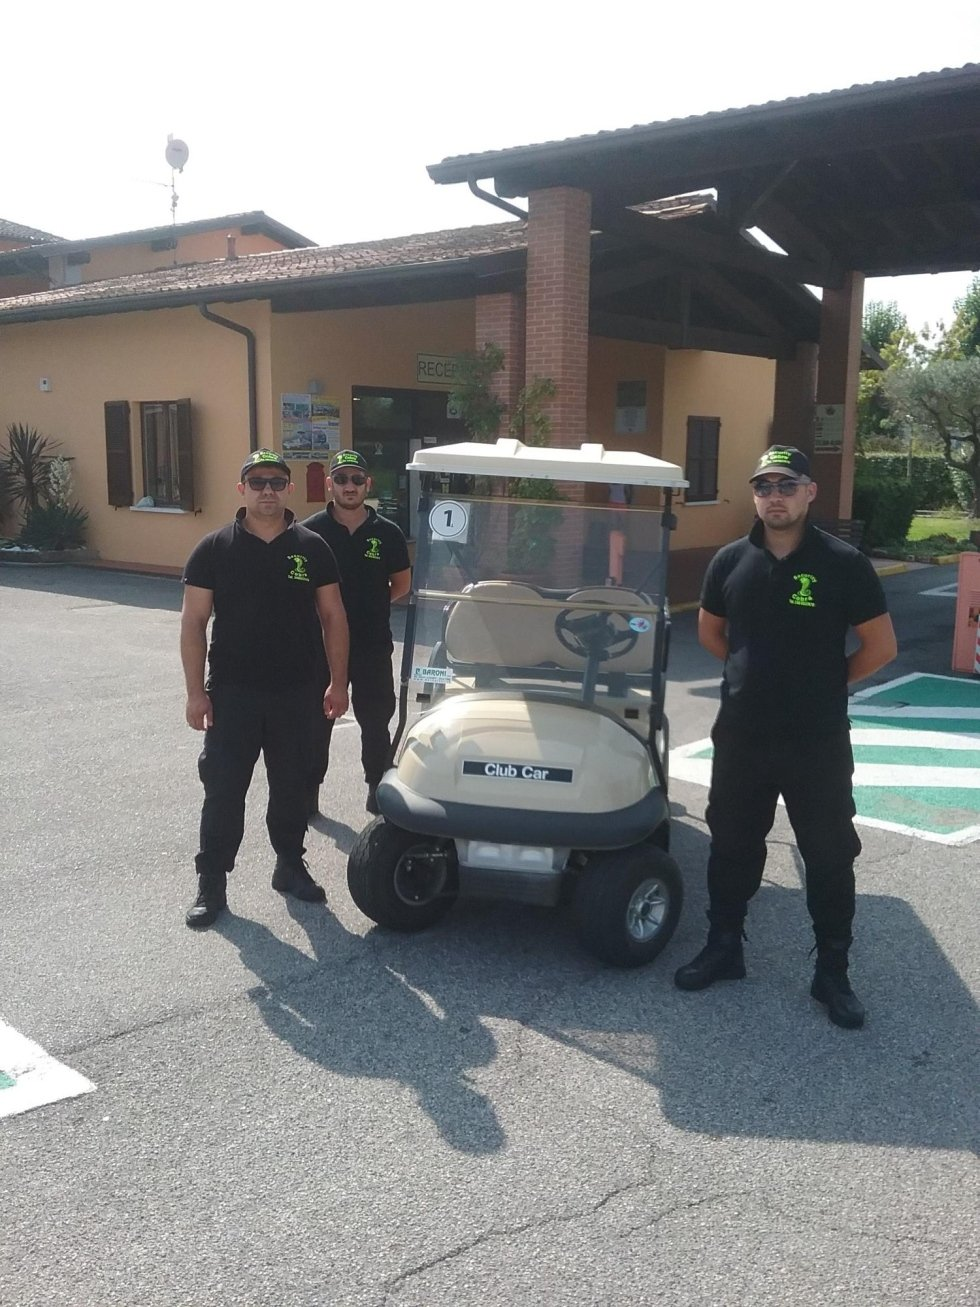 tre guardie di sicurezza vicino a un caddy